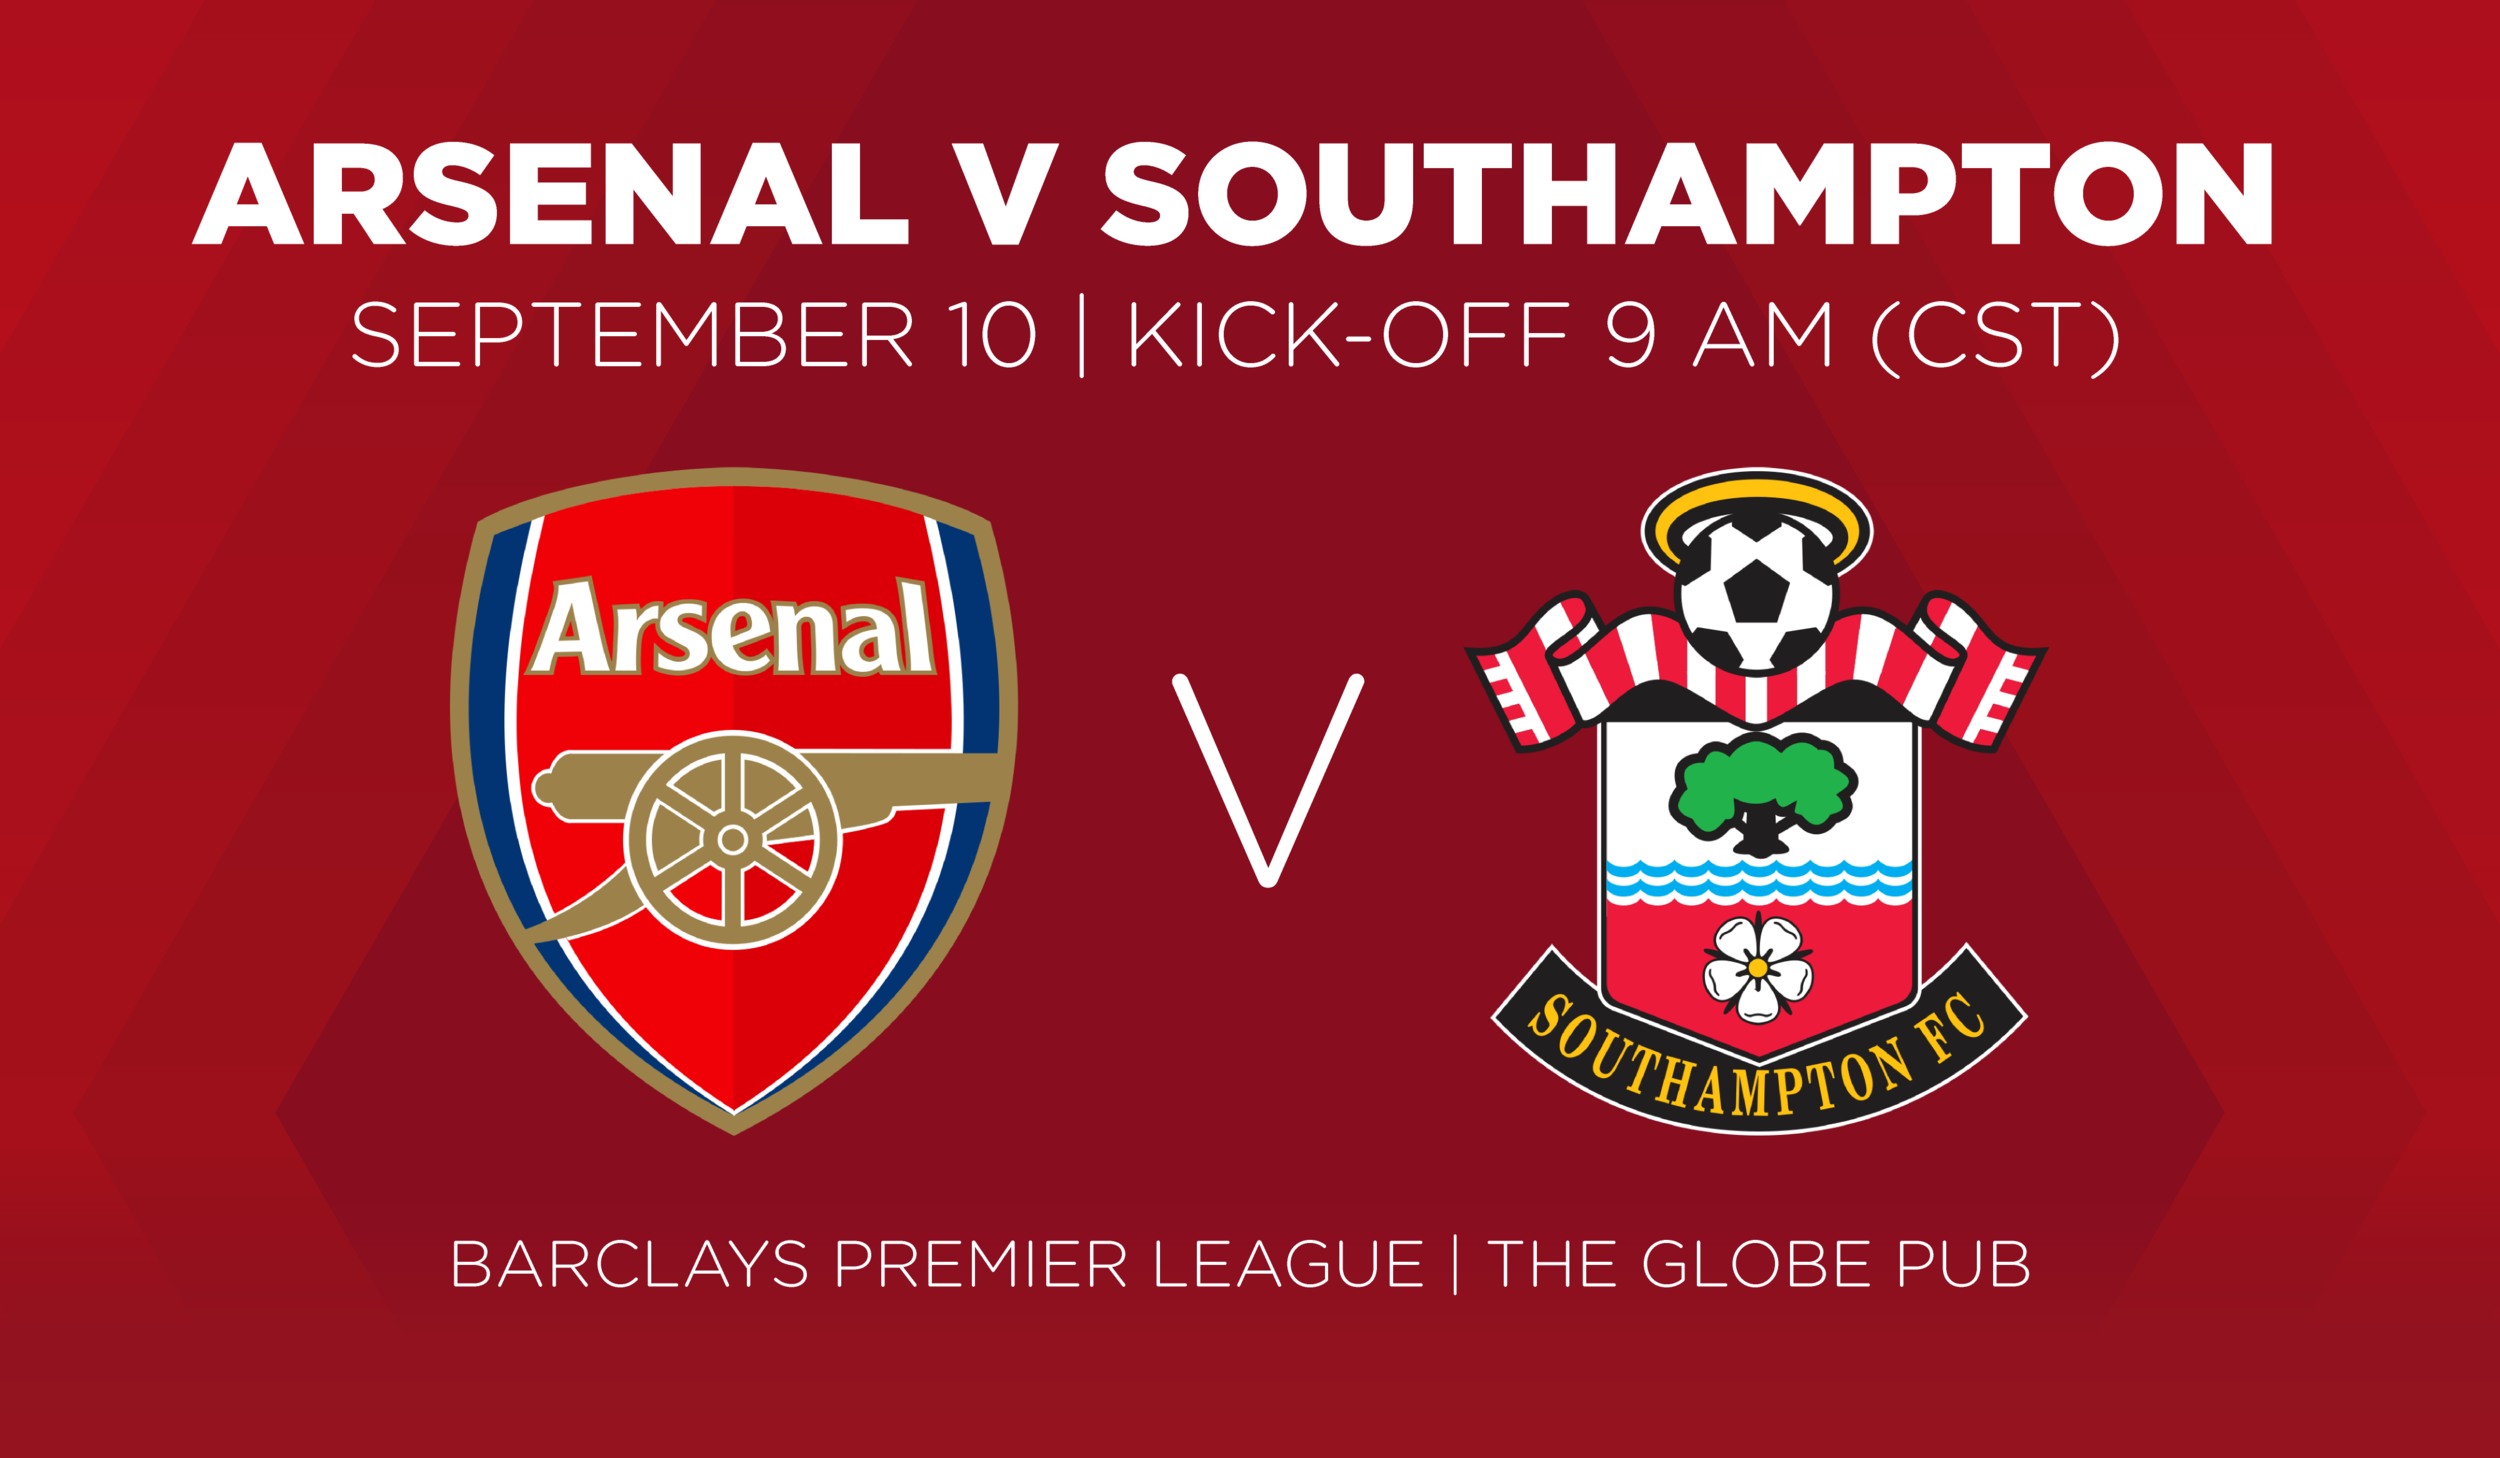 Arsenal V Southampton September 10